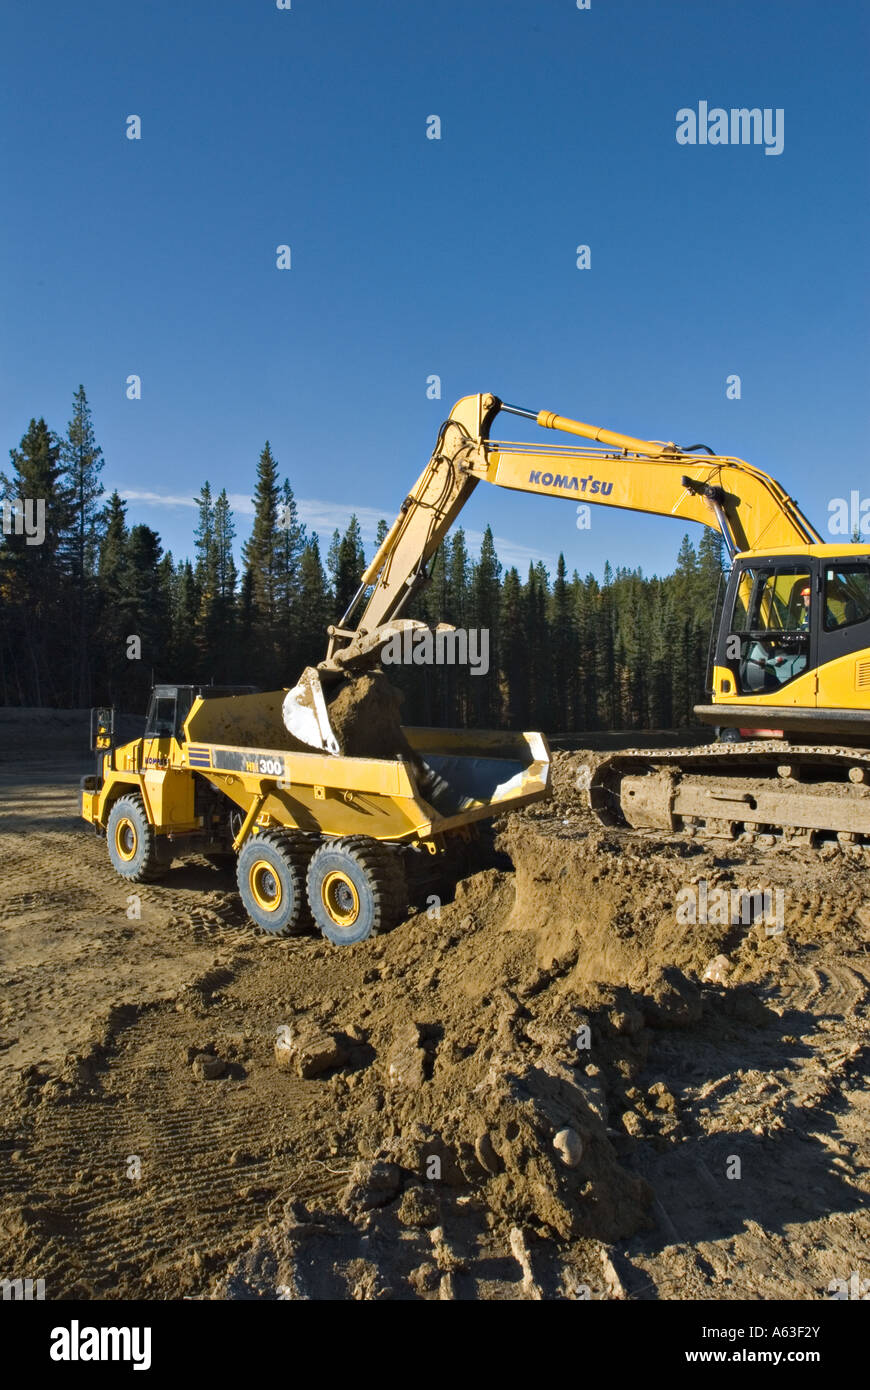 Loading Truck at a construction site. - Stock Image